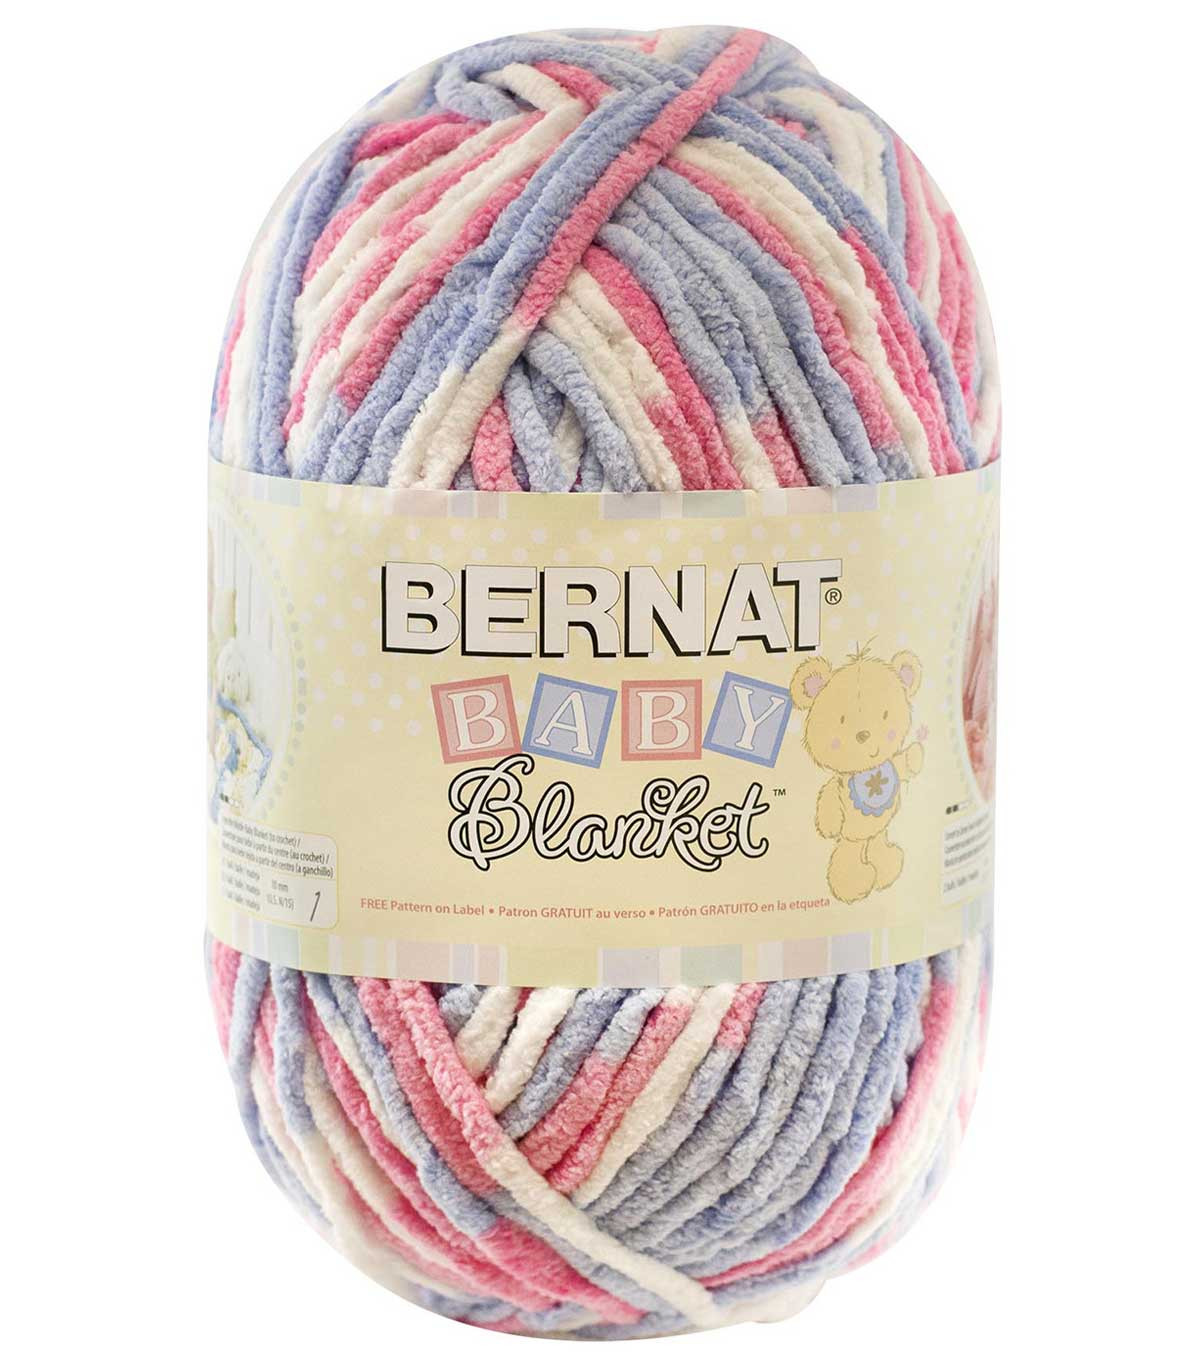 Bernat Blanket Yarn Best Of Bernat Baby Blanket Yarn 10 5oz Of Beautiful 42 Models Bernat Blanket Yarn